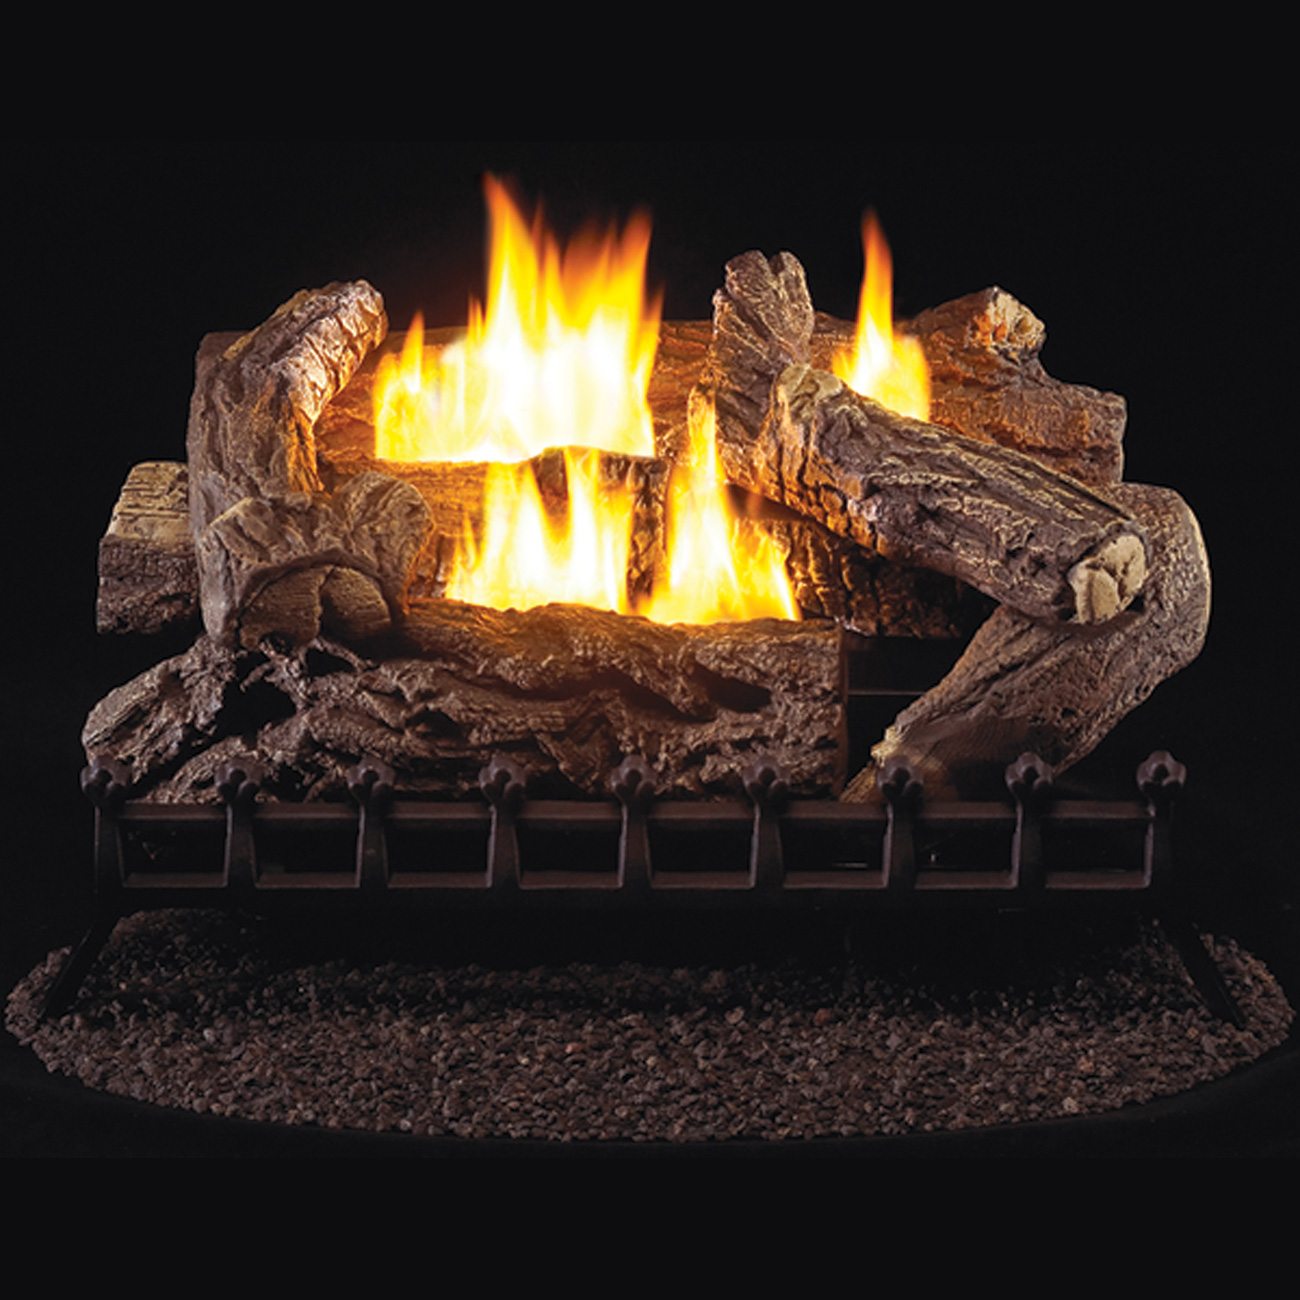 architecture fire perfect outdoor logs propane gas fireplace custom pits ceramic pleasurable pit for ideas design simple